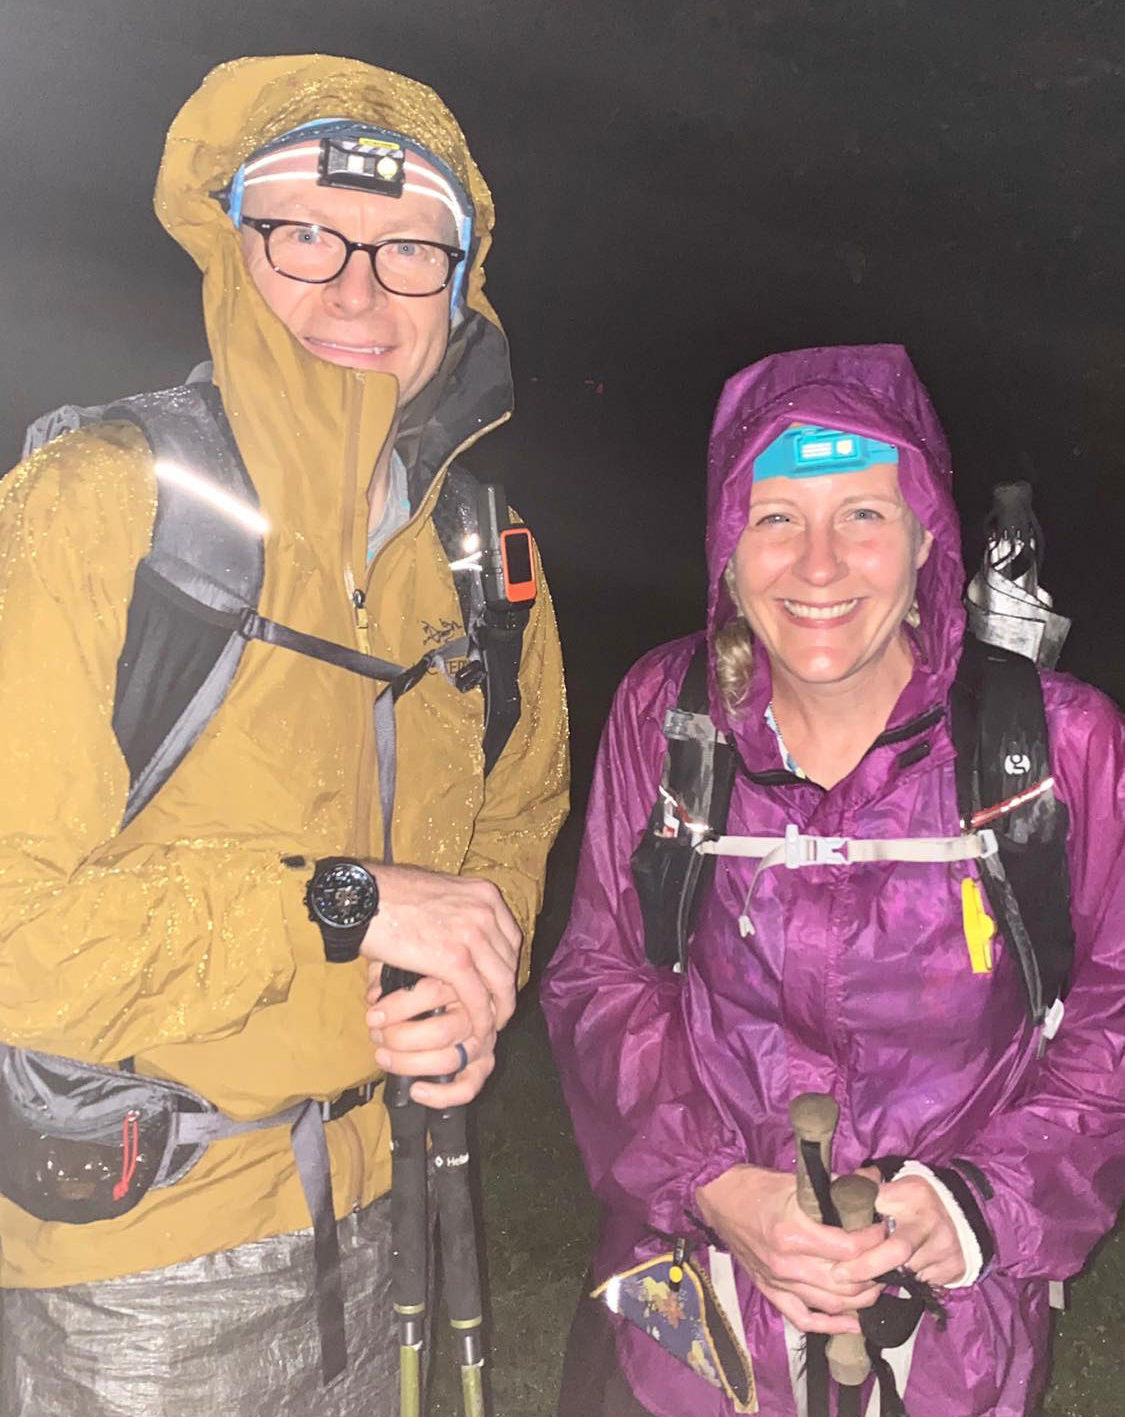 Chris Ford and Nancy East in rain gear